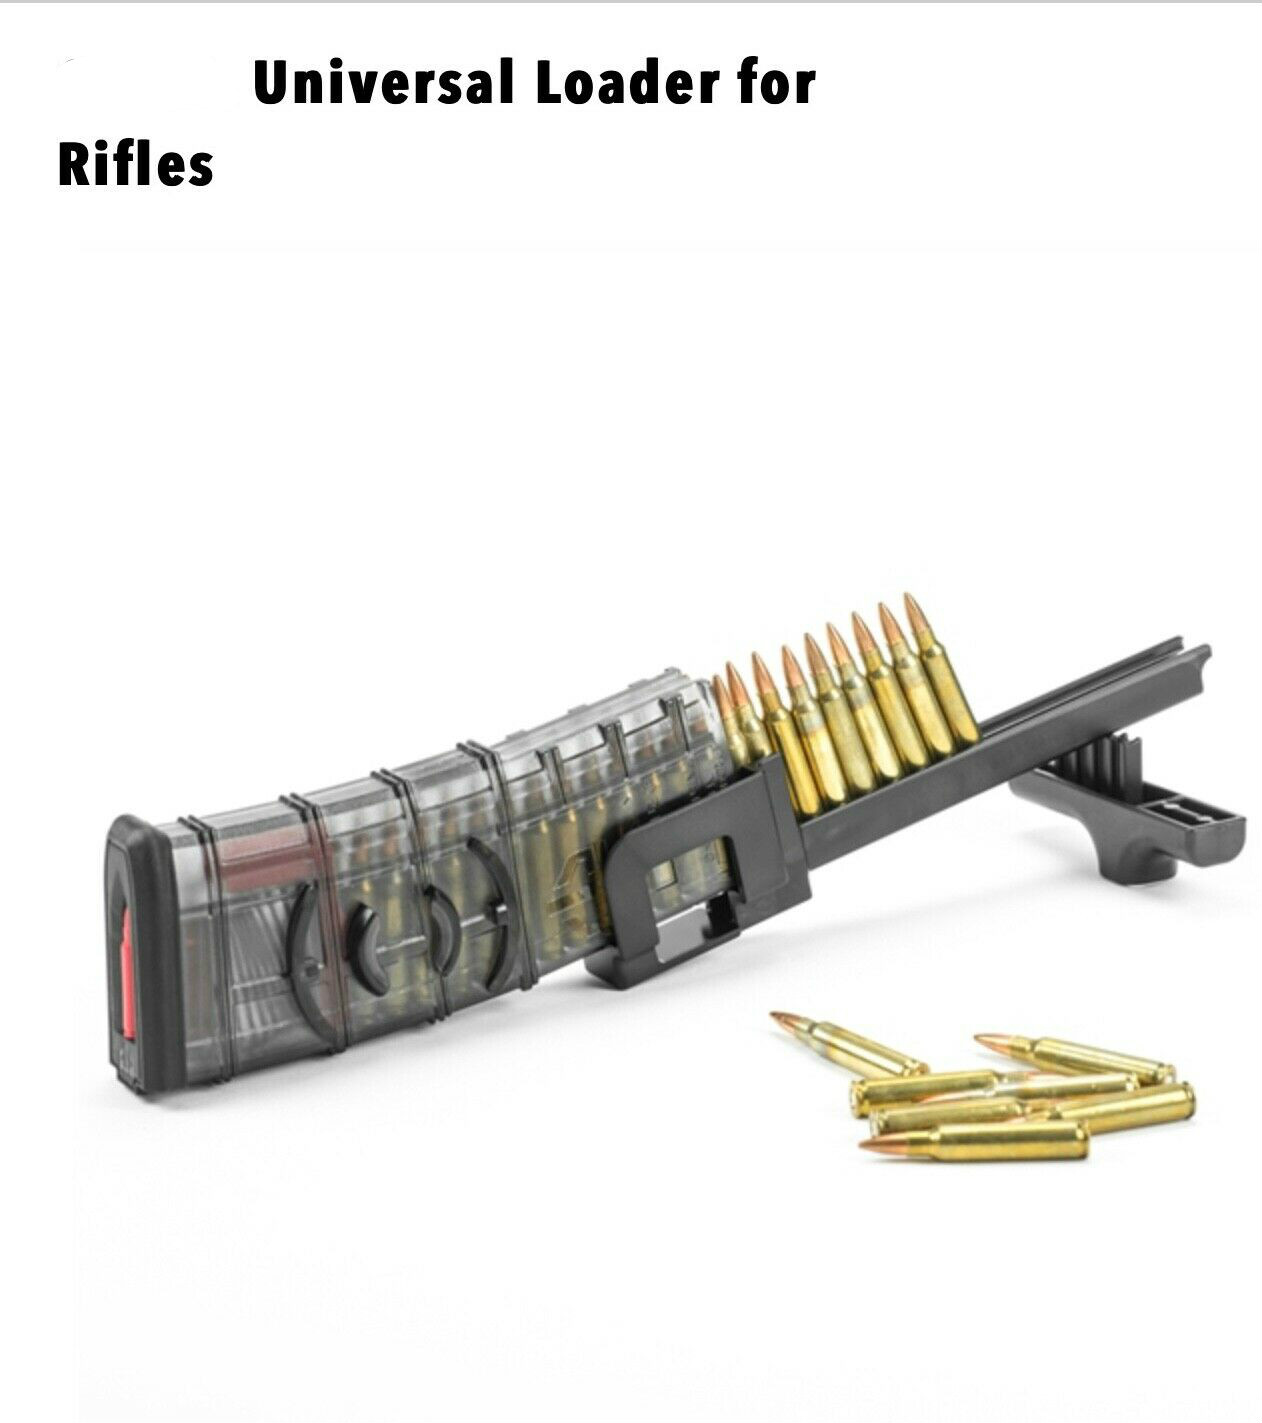 PMAG AK47 AR15 Speed Loader Rifle Magazine Universal .223 5.56 .308 7.62x39 5.45x39 22LR .22 Hunt Gun Ruger Colt